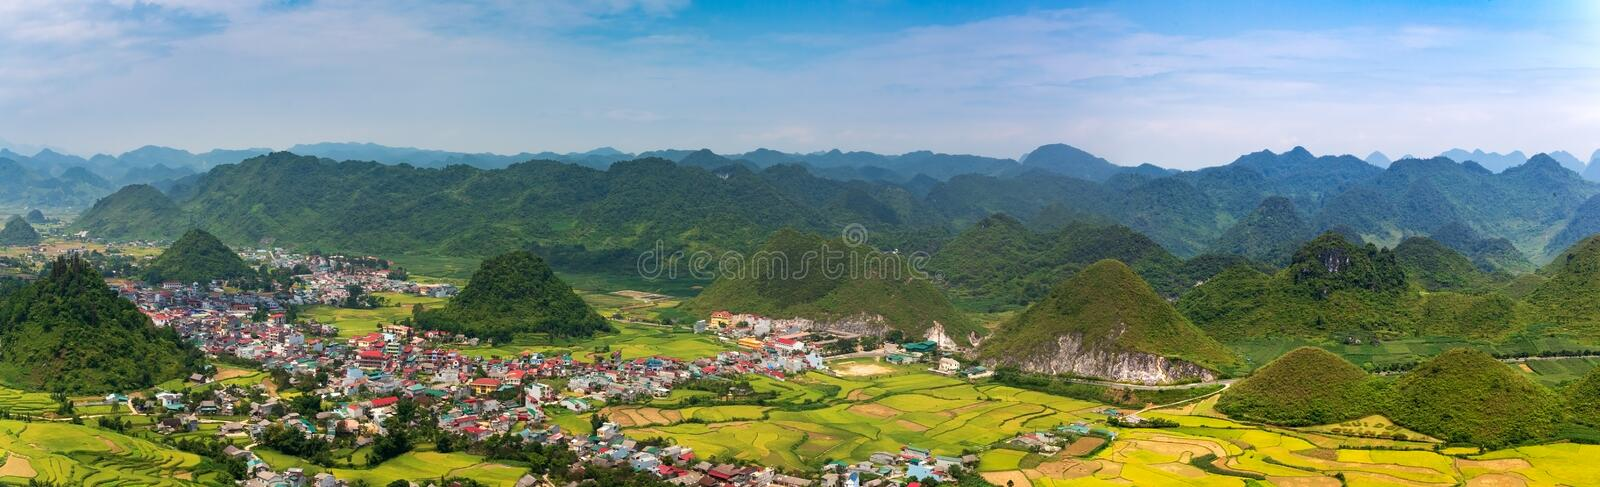 Panoramic view of Tam Son town and the Fairy Twin Mountains in Quan Ba District, Ha Giang Province, Northern Vietnam royalty free stock photography